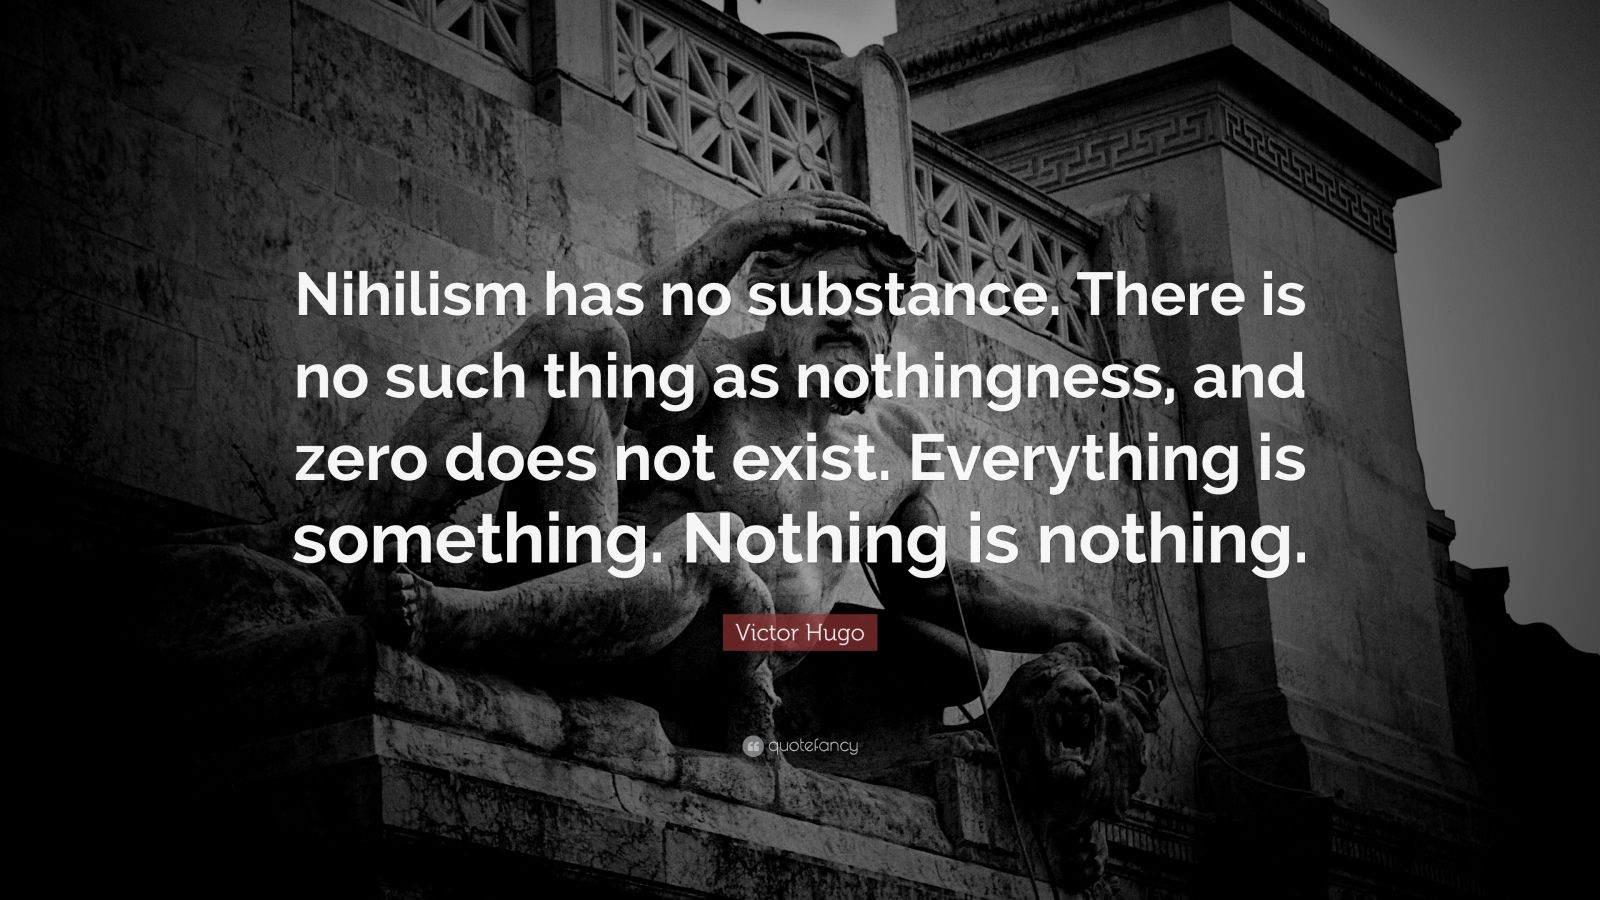 """Victor Hugo Quote: """"Nihilism has no substance. There is no such thing as nothingness, and zero does not exist. Everything is something. Nothing is nothing."""""""